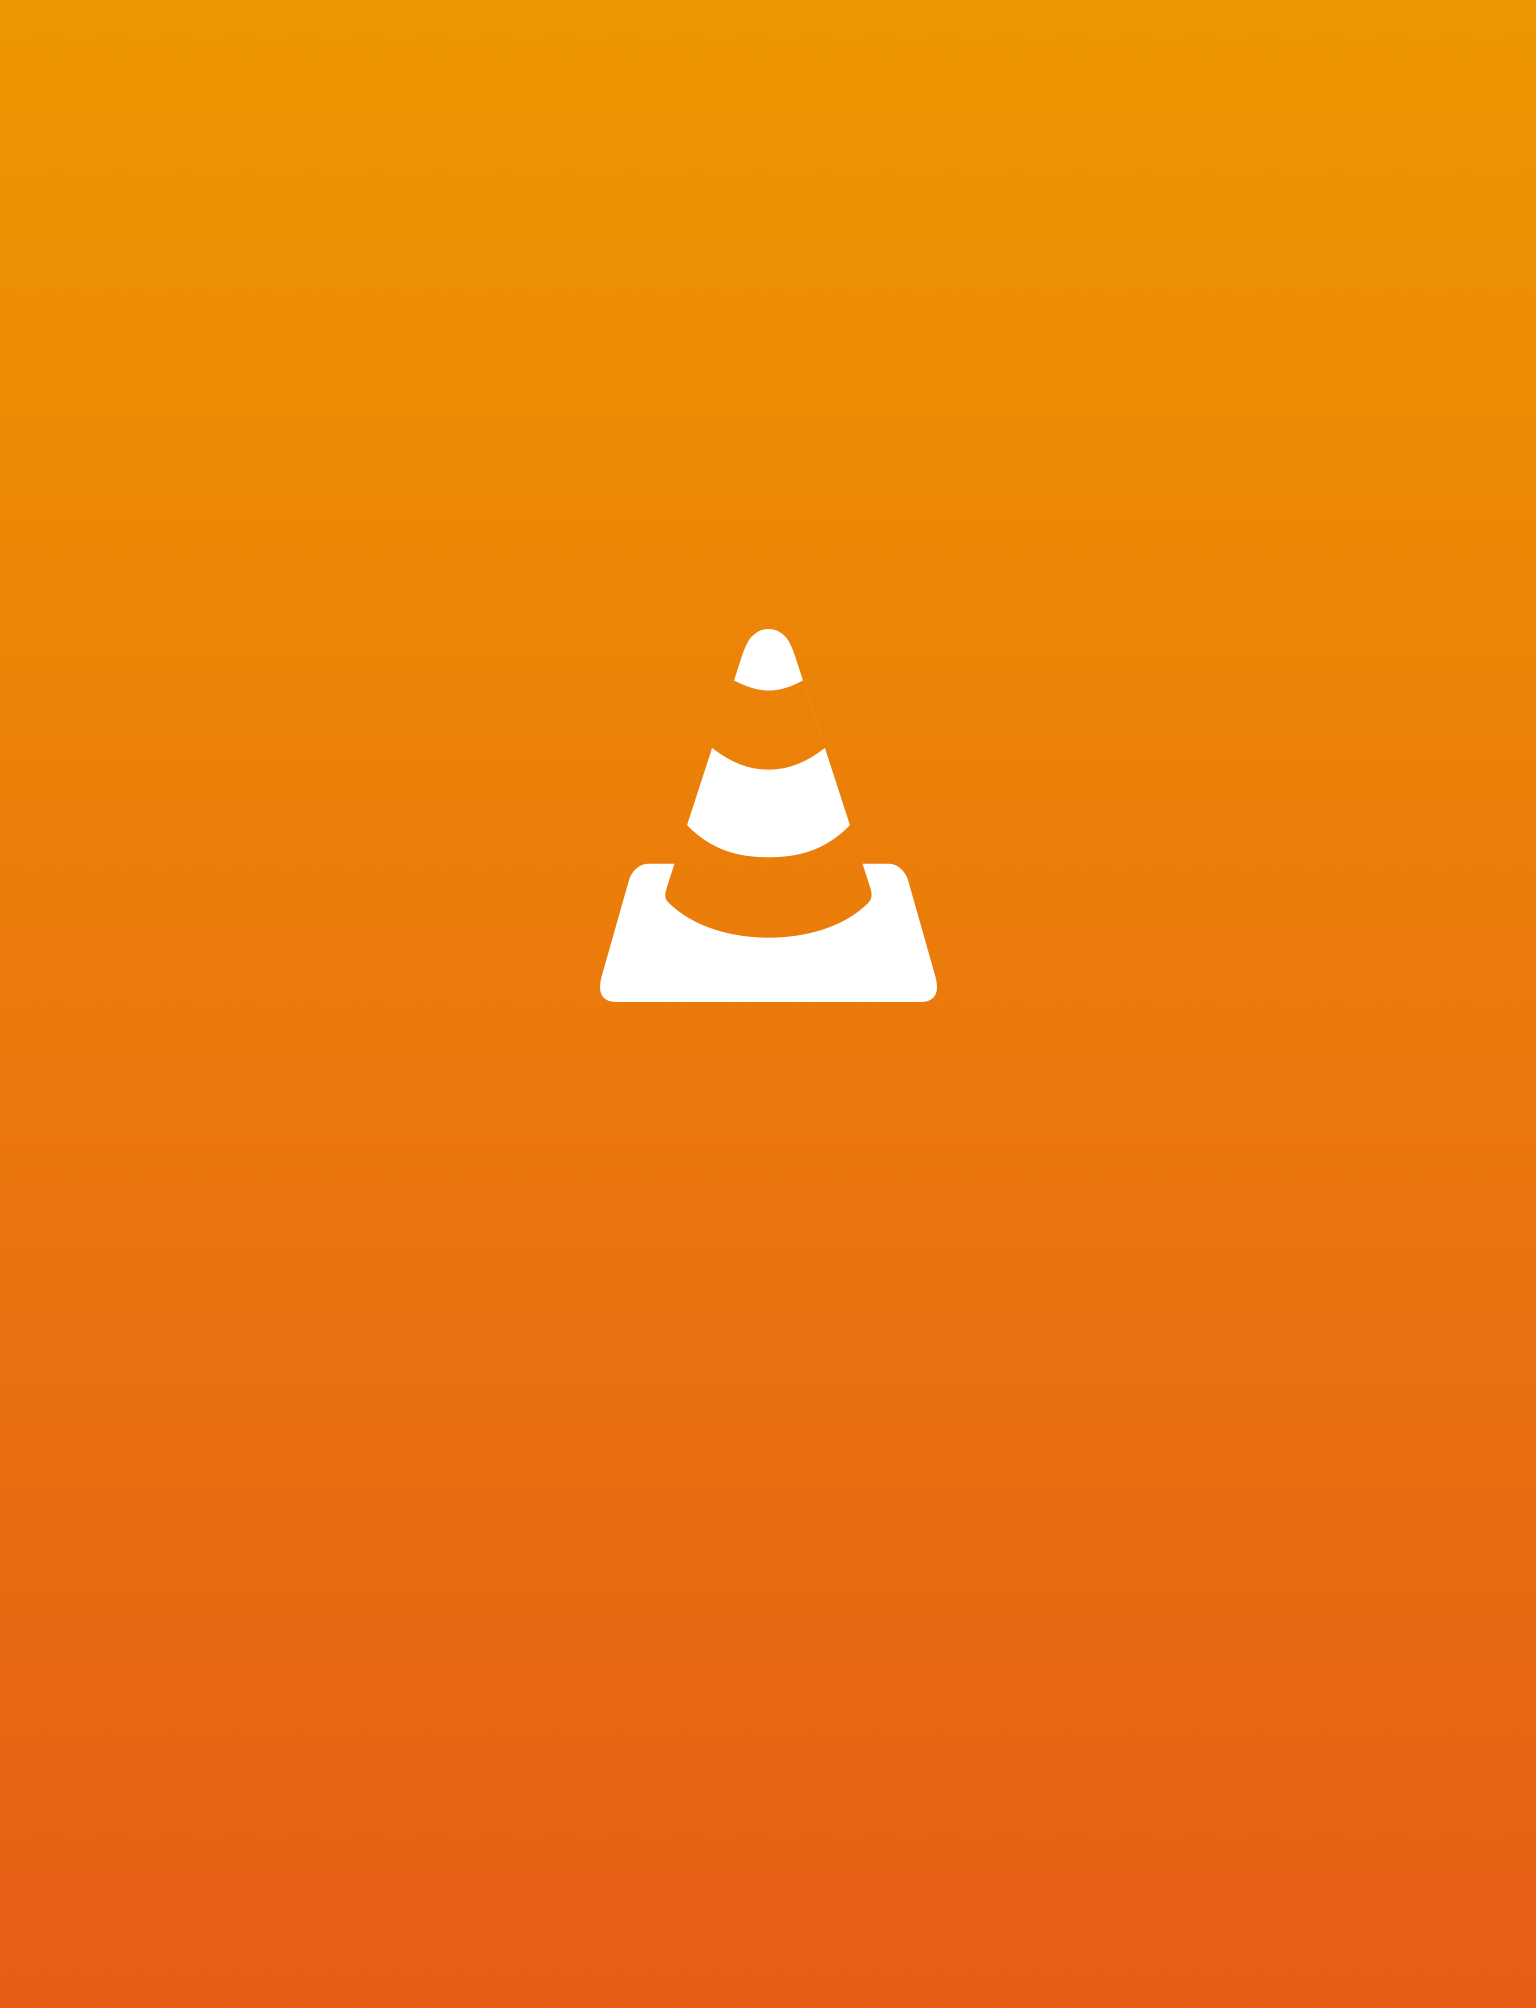 vlc-ios/Images.xcassets/LaunchImage.launchimage/iPad-ExcludeStatusBar@2x.png